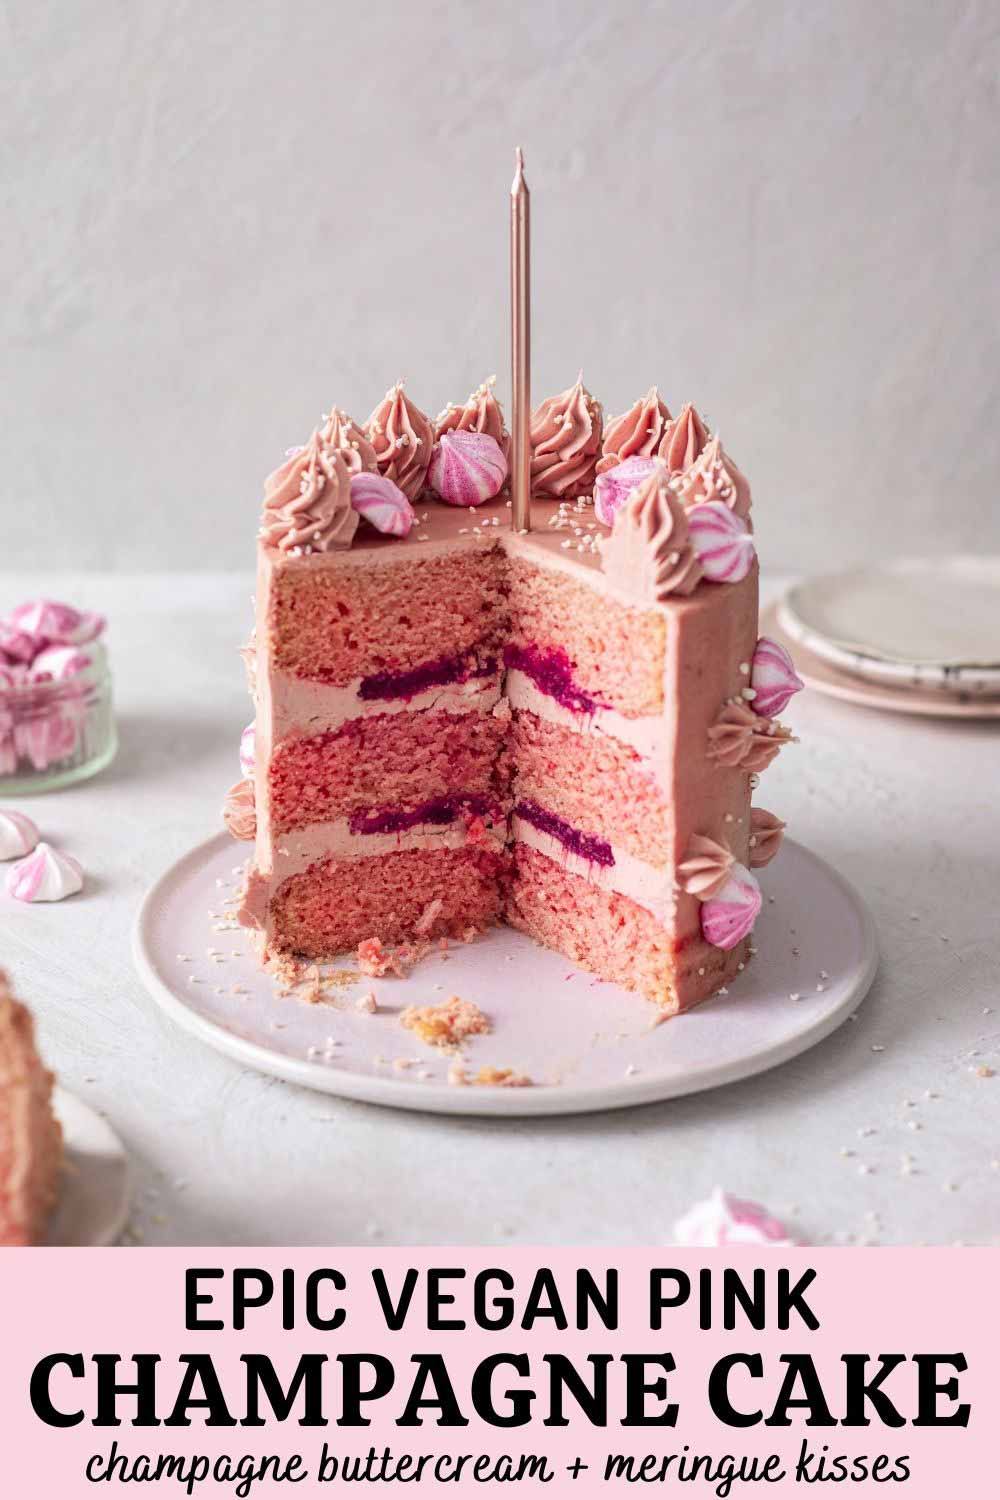 Vegan Pink Champagne Cake (with champagne buttercream)